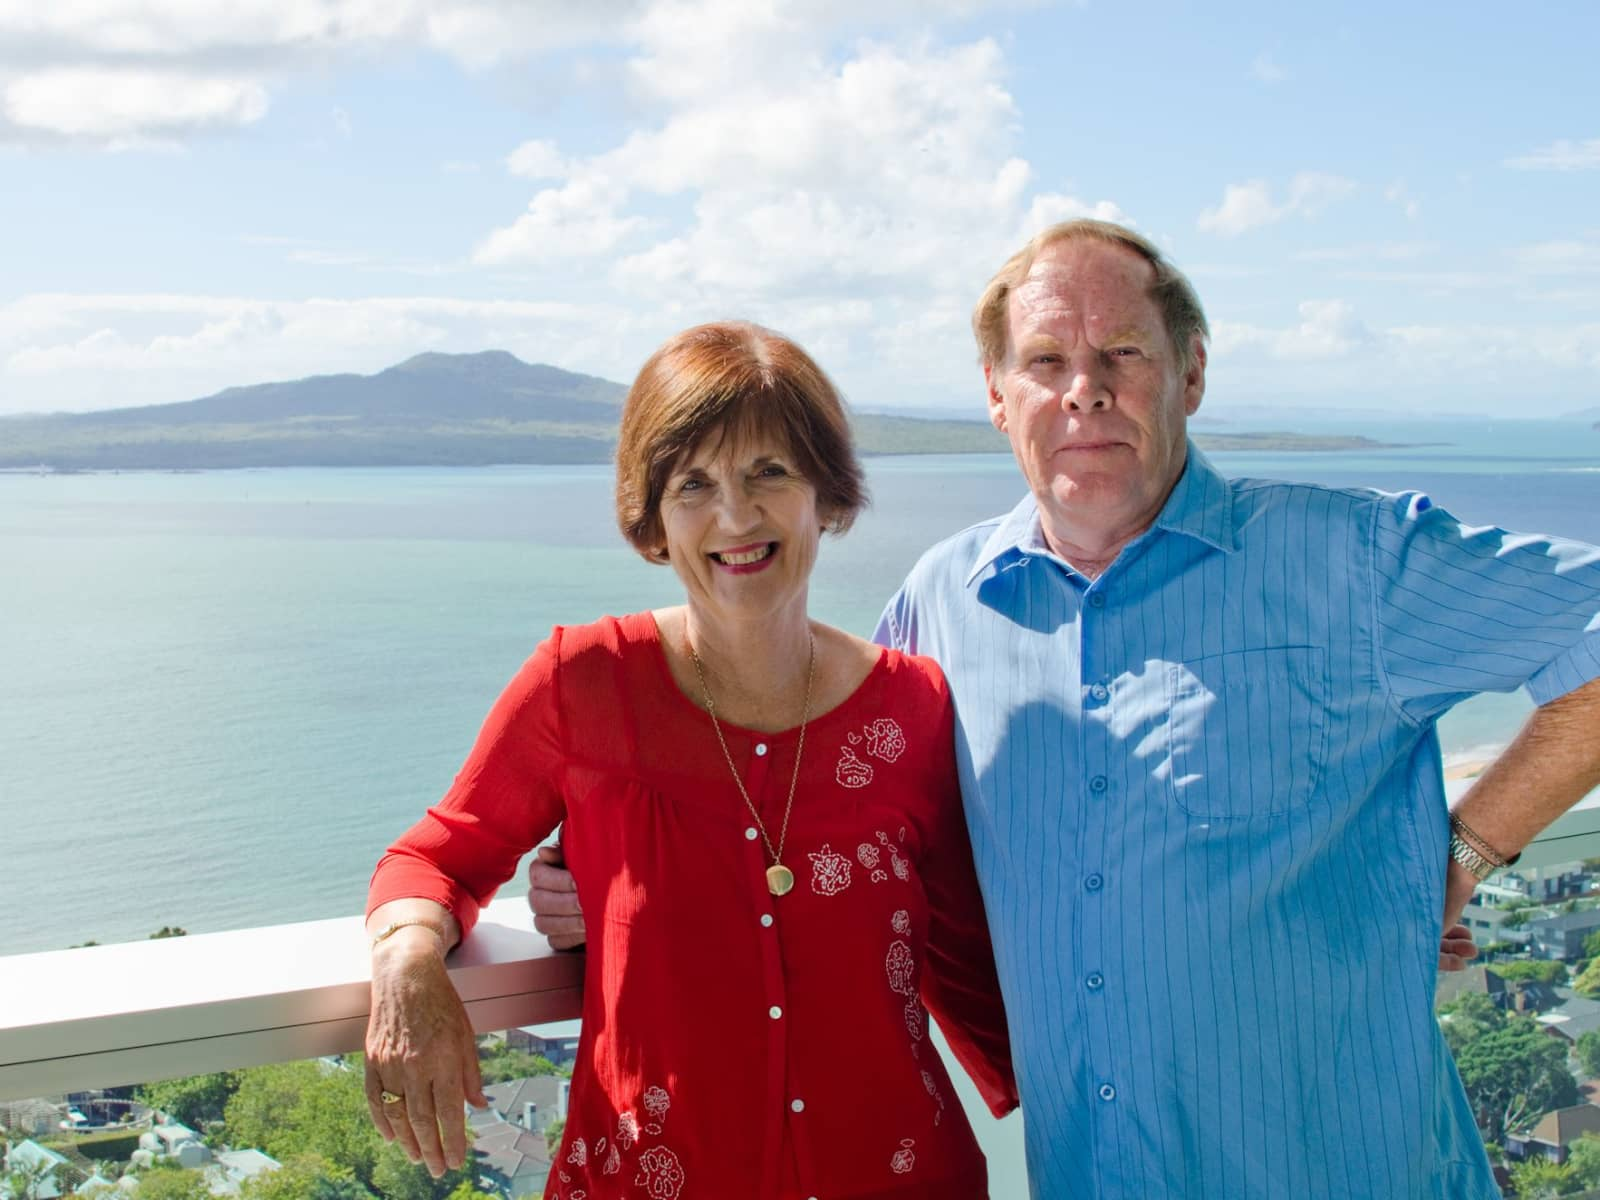 Gavin & Barbara from North Shore, New Zealand